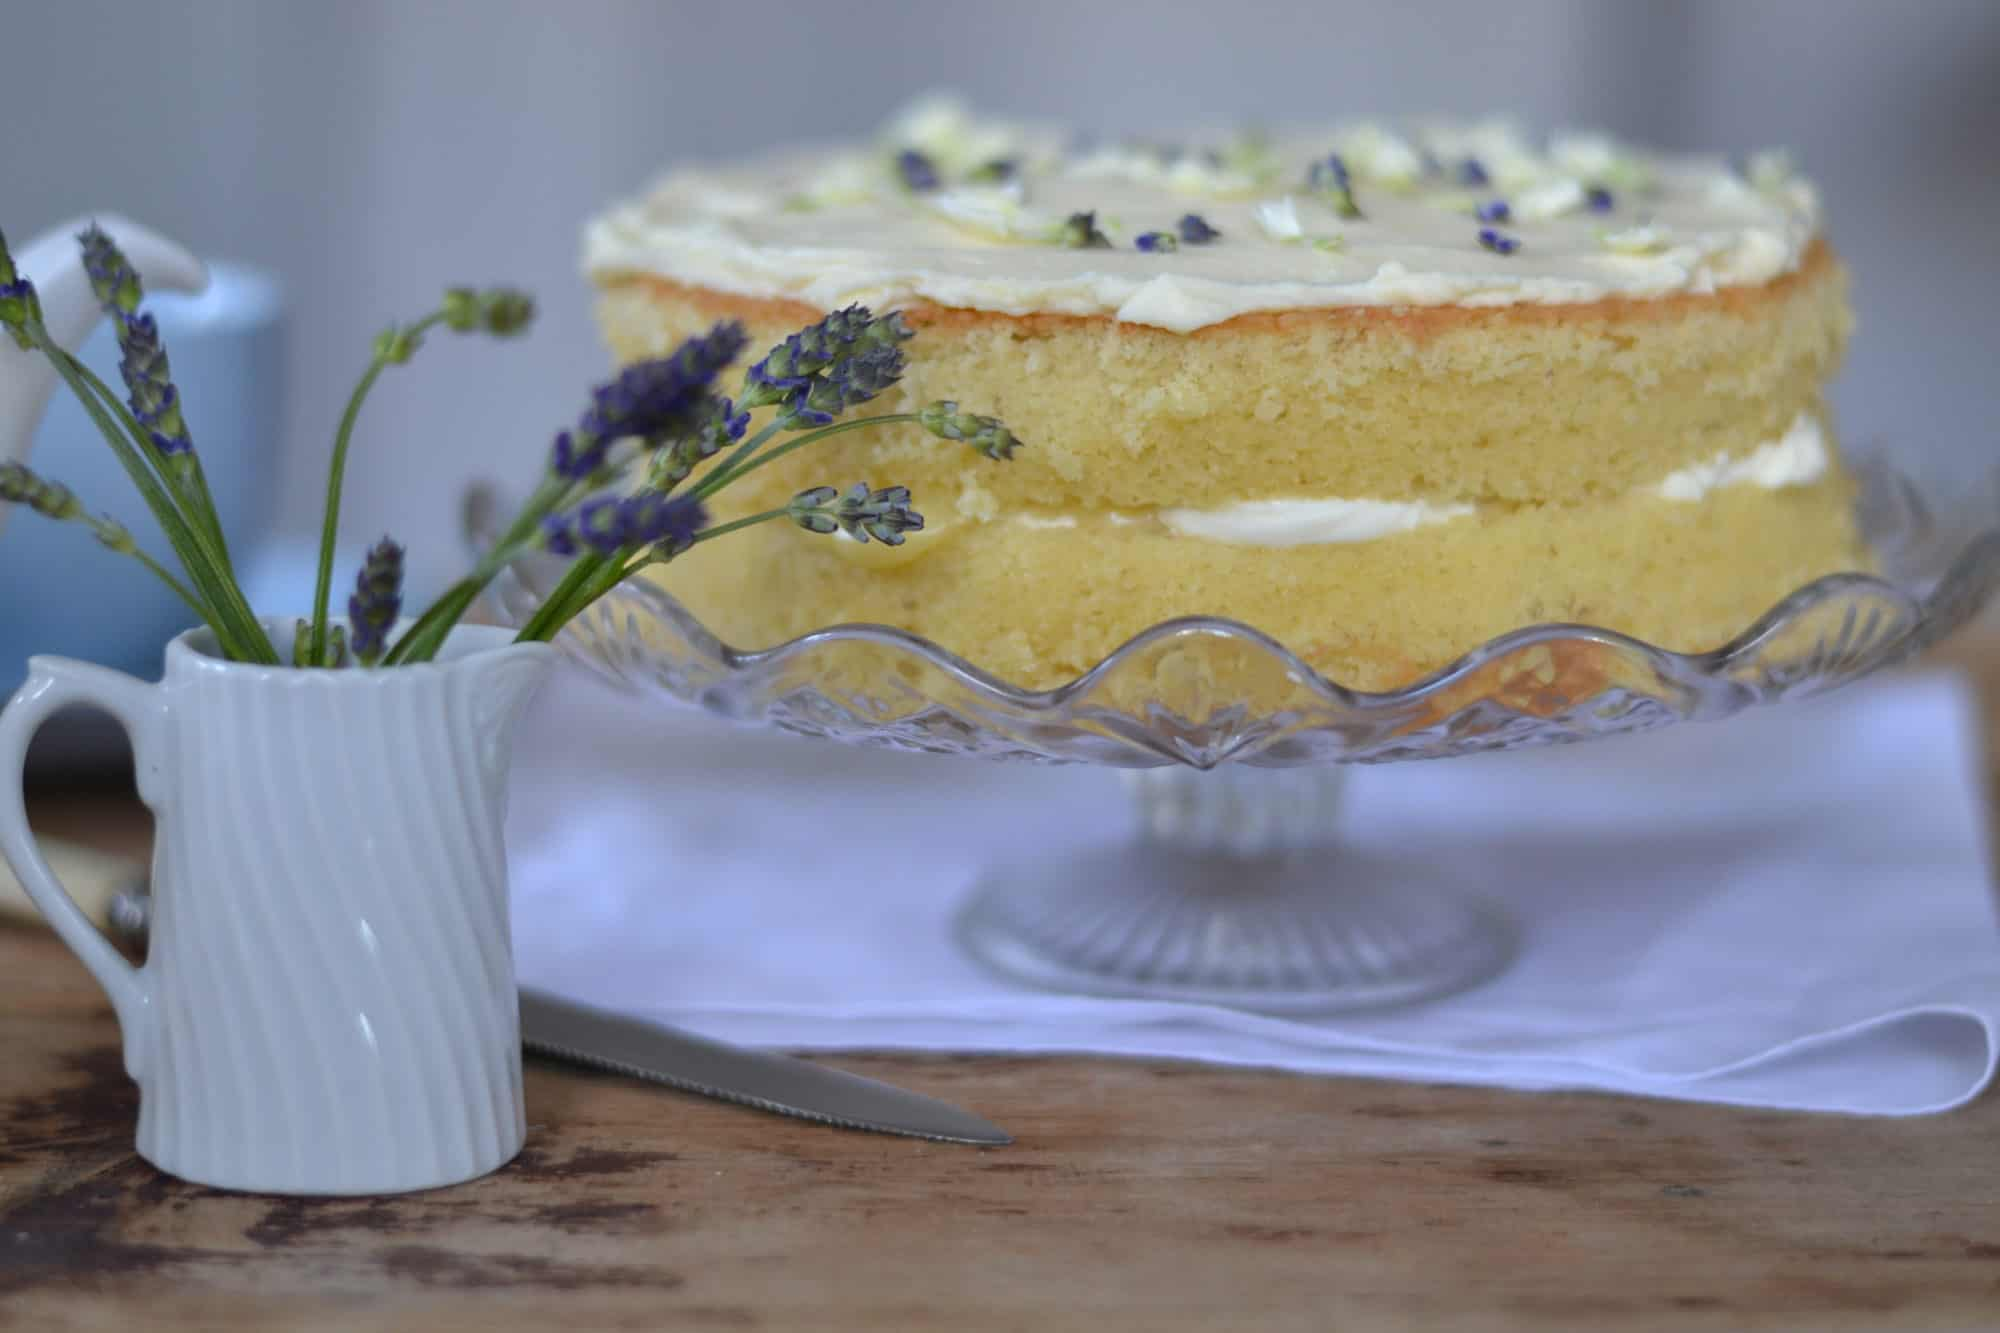 Cake on a cake stand with a jug of flowers